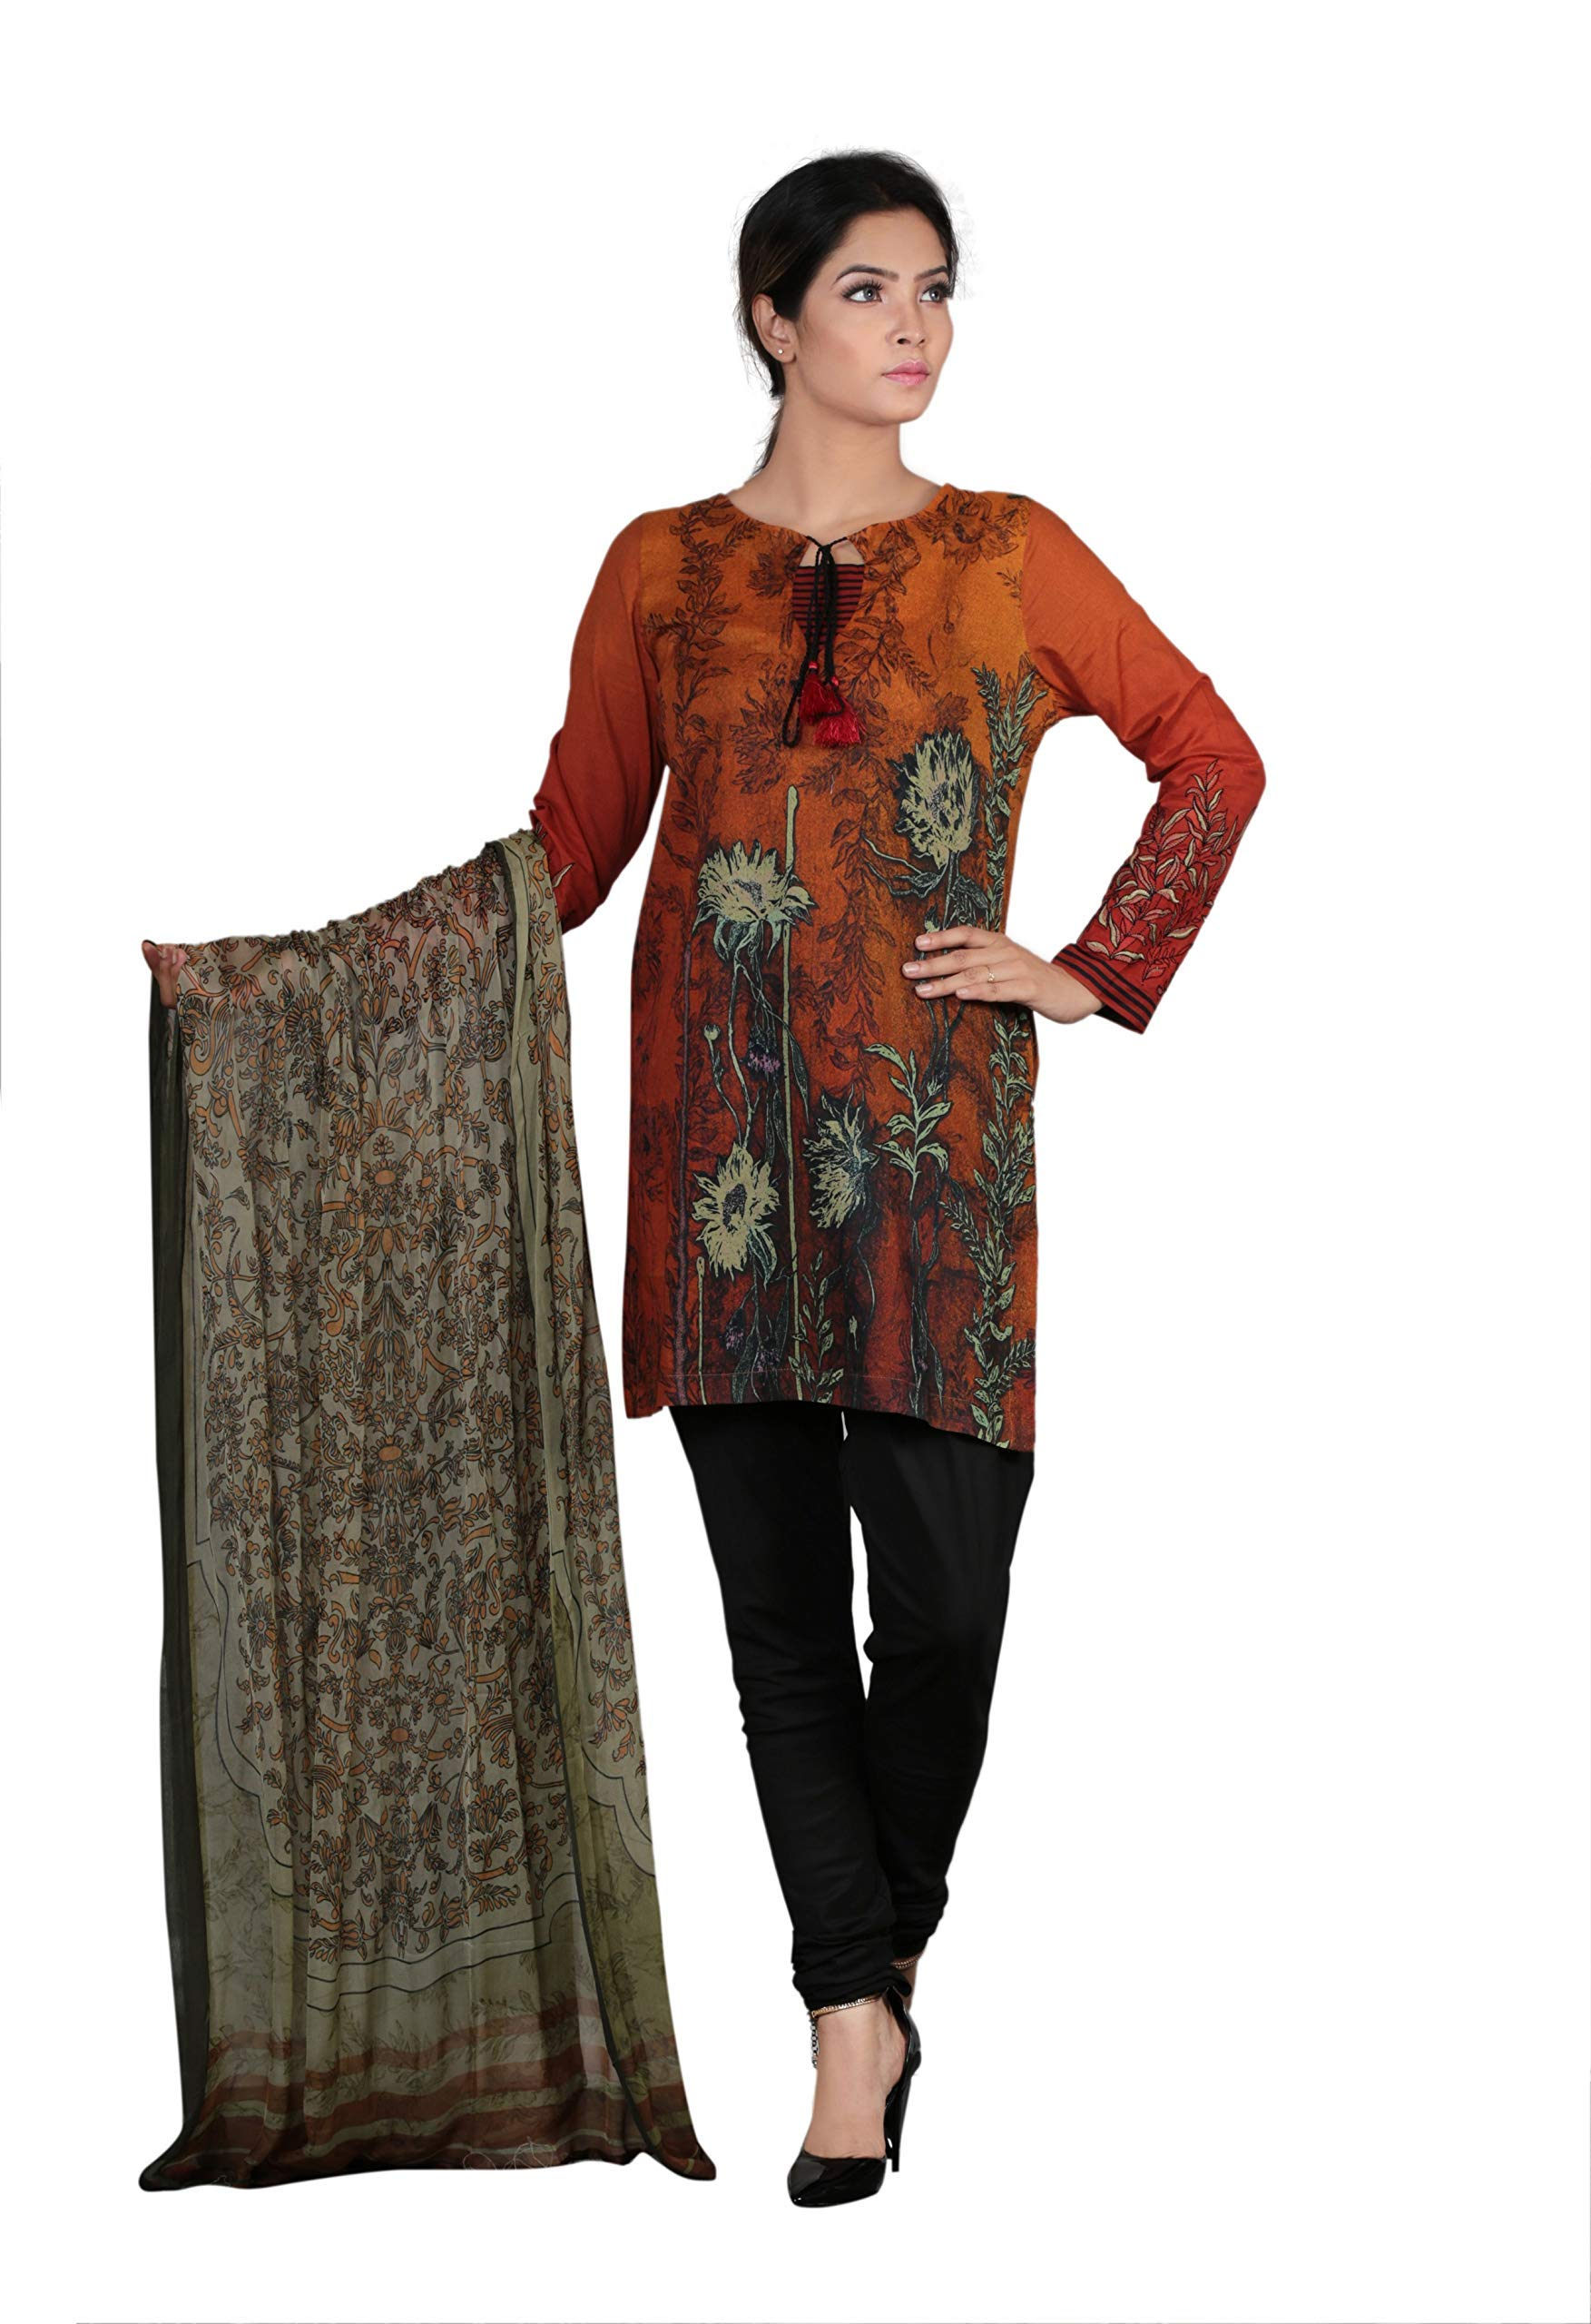 YELLOW 3pcs Sunset Oriental Flower Printed Kurti with Chiffon Dupatta and Solid Color Trouser Ready to wear